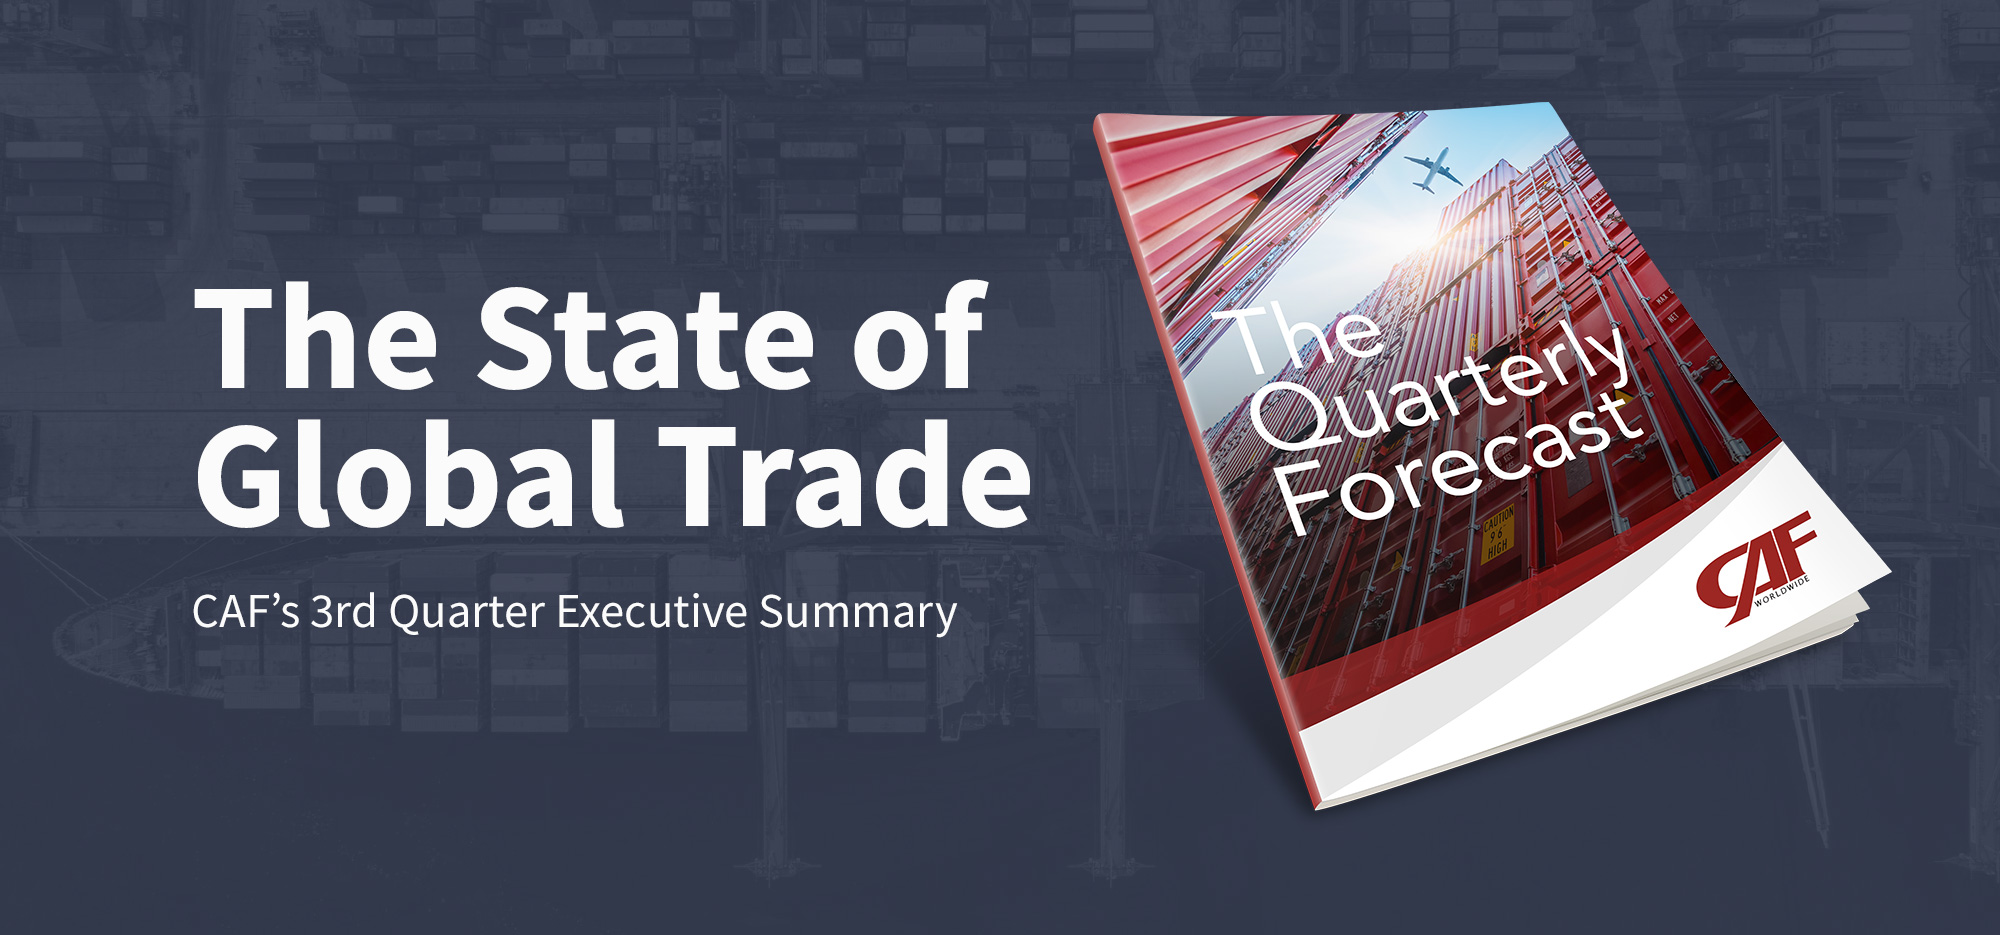 The State of Global Trade: CAF's 3rd Quarter Executive Summary